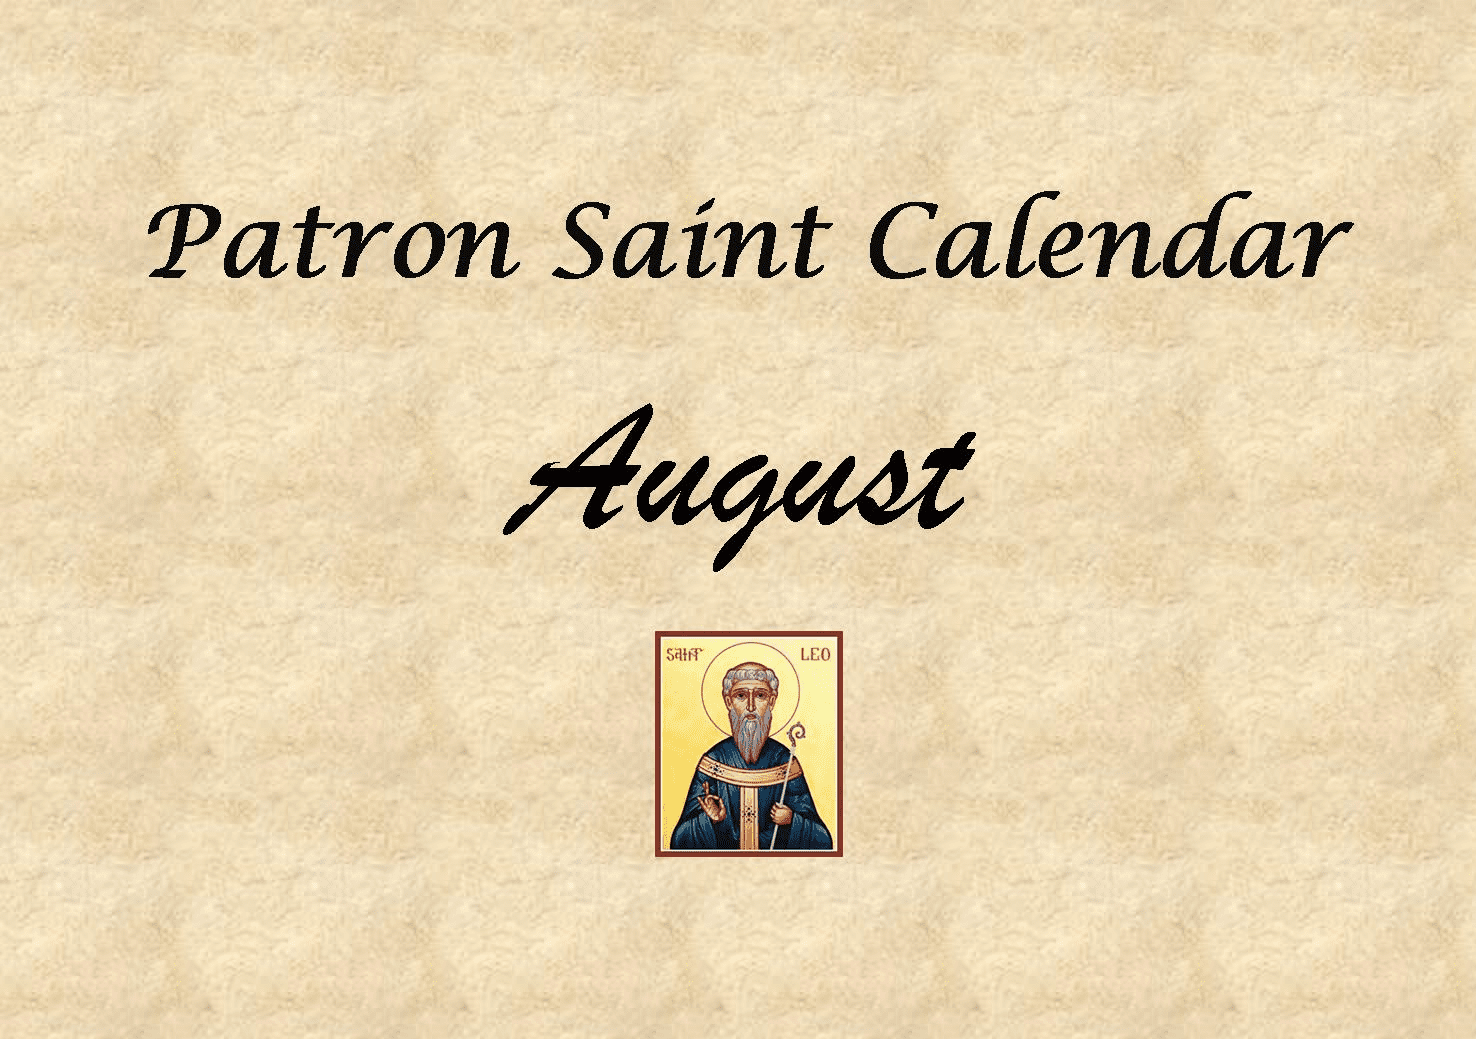 Patron Saint Memorial Feast Day for the Month of August